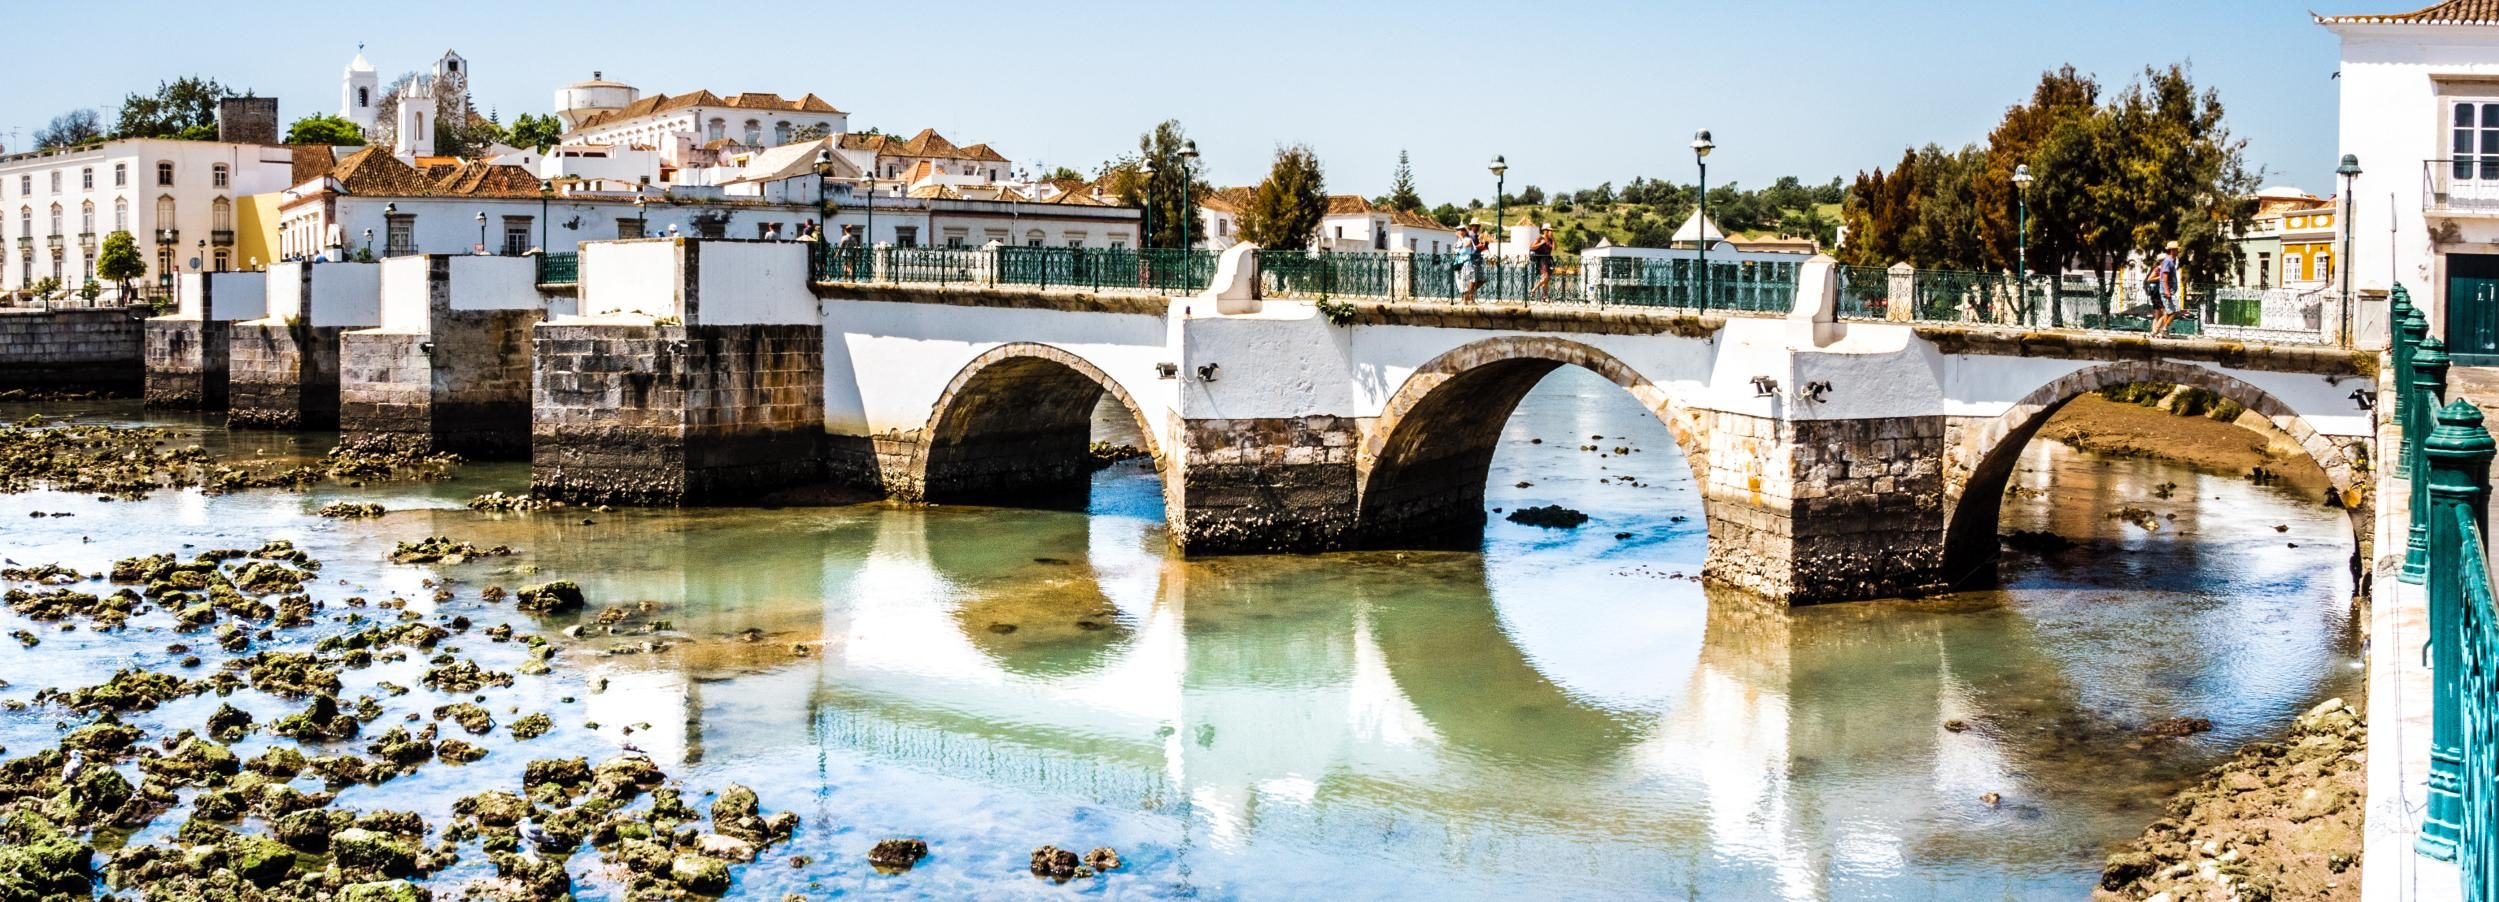 Olhão, Tavira, and Faro: Eastern Algarve Minivan Tour